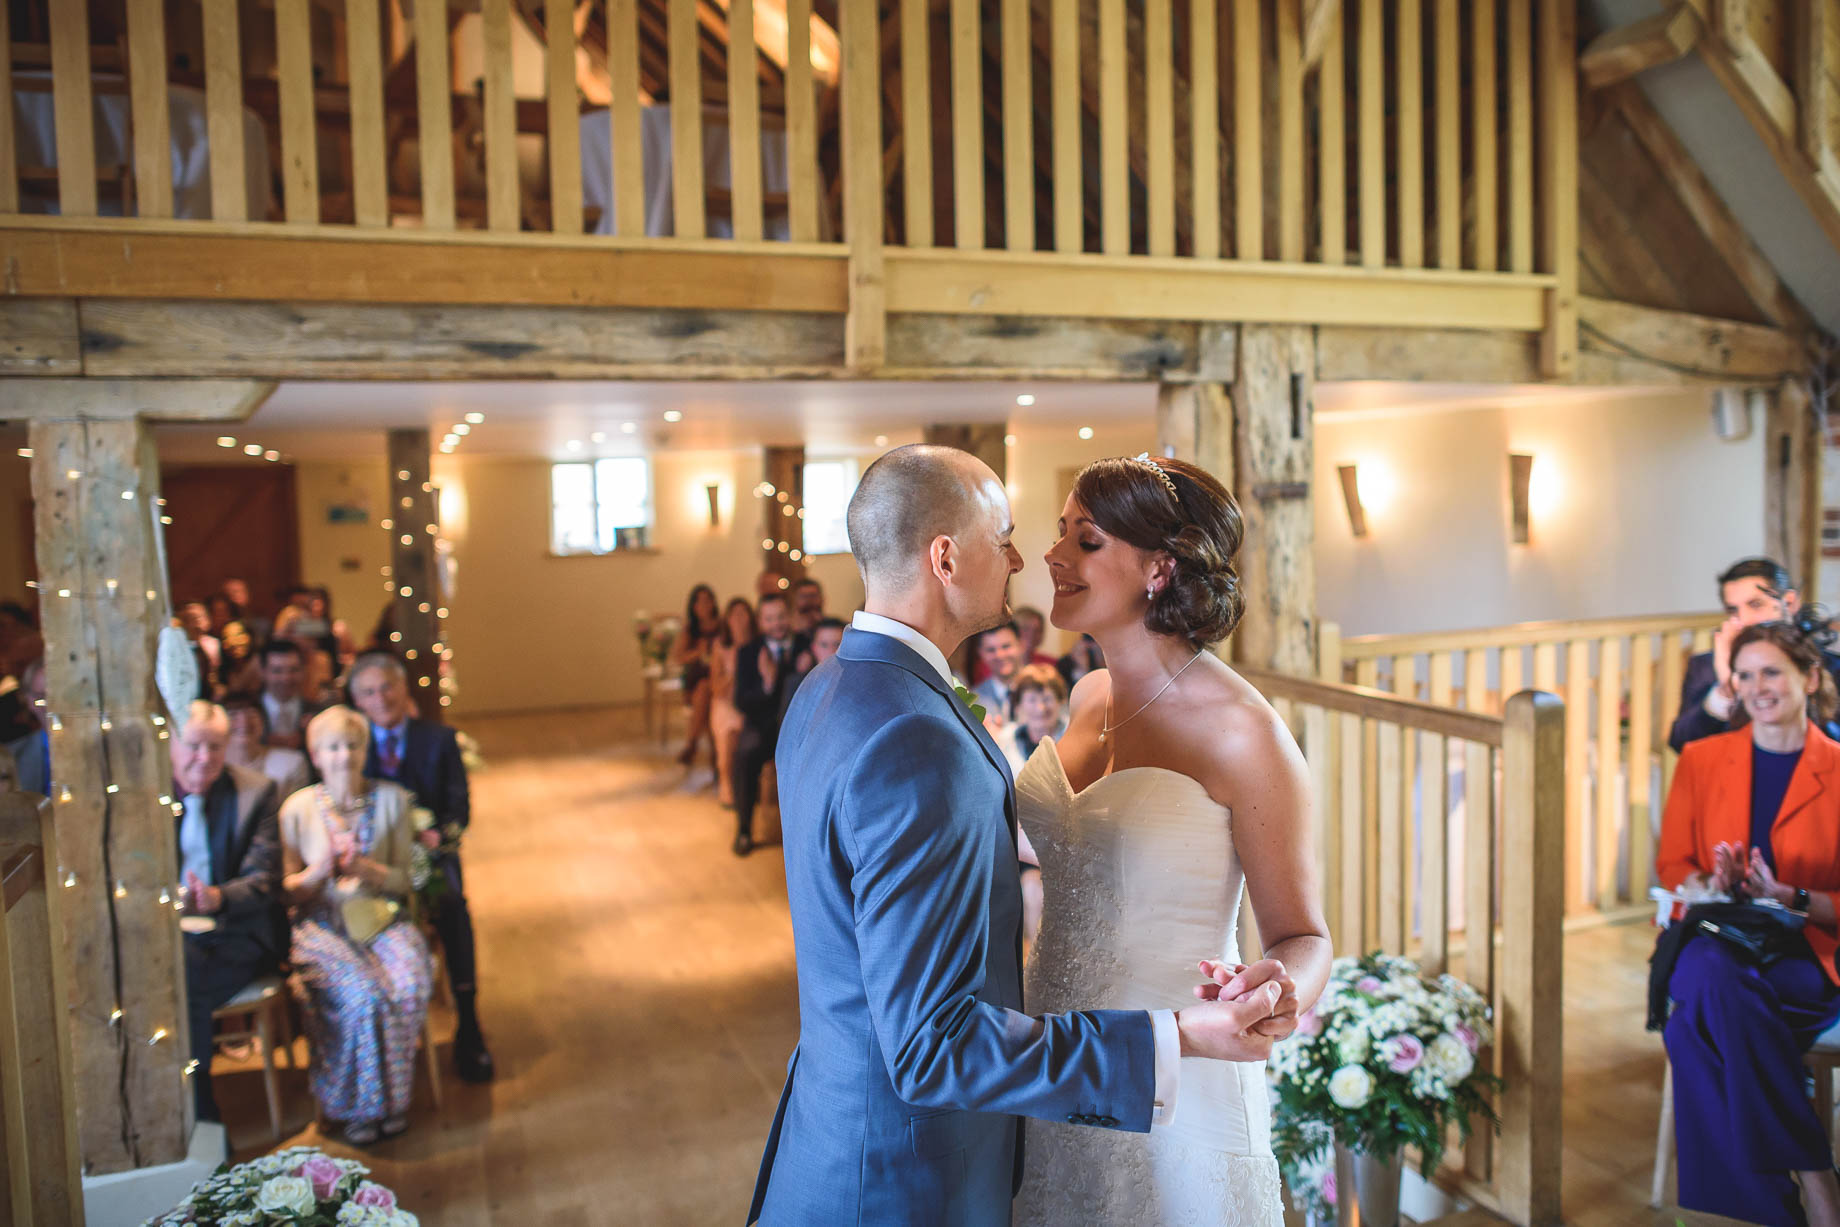 Bury Court Barn wedding photography - Guy Collier Photography - Karen and John (58 of 166)